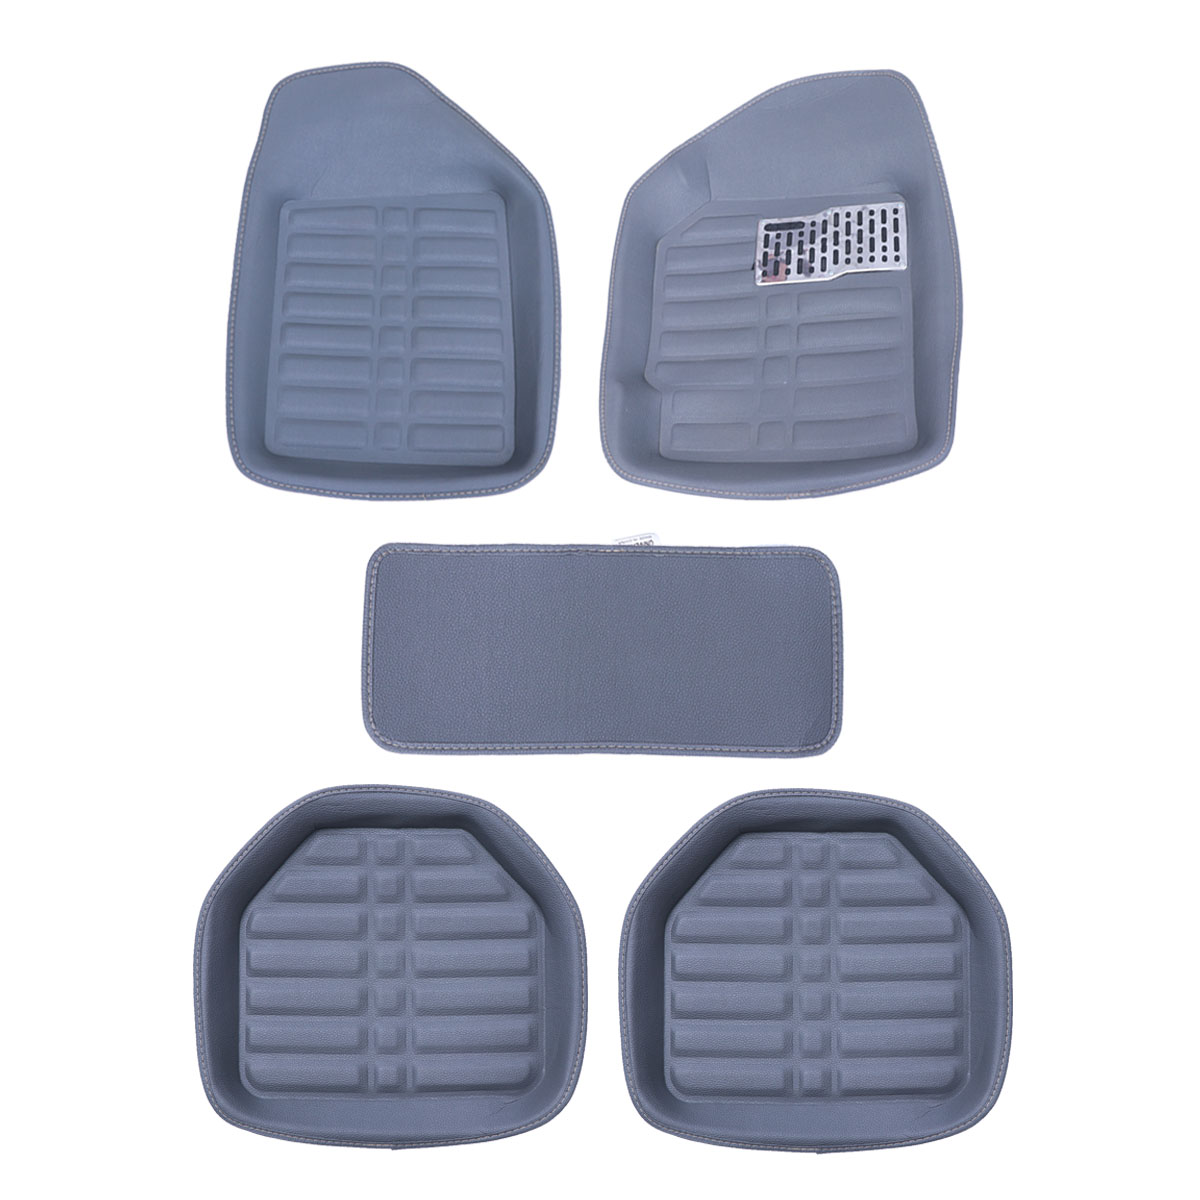 5pcs Car Leather Waterproof Floor Mats Indentation Comp With Pvc Thread Ring Universal Covers